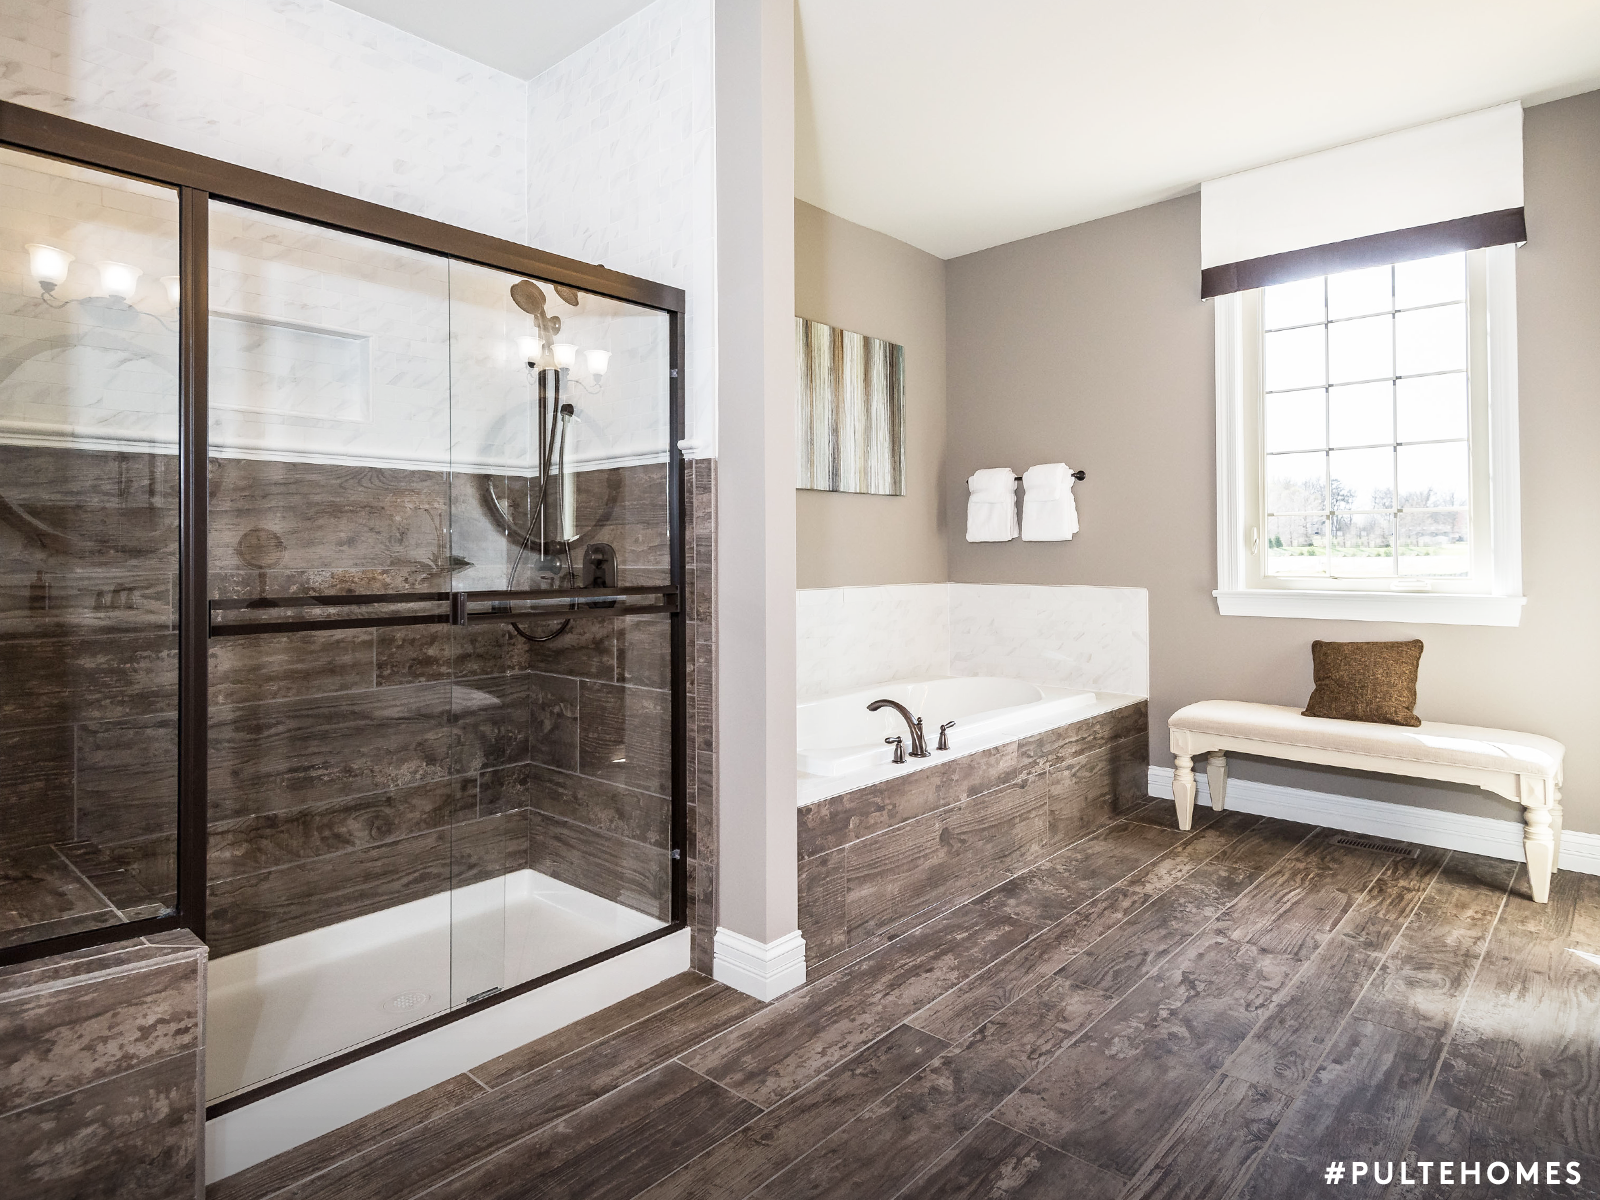 No Appointment Needed At This Spa With Modern Features And A Rustic Finish Our Bathroom Design Helps Y Rustic Chic Bathrooms Bathroom Design Help Pulte Homes